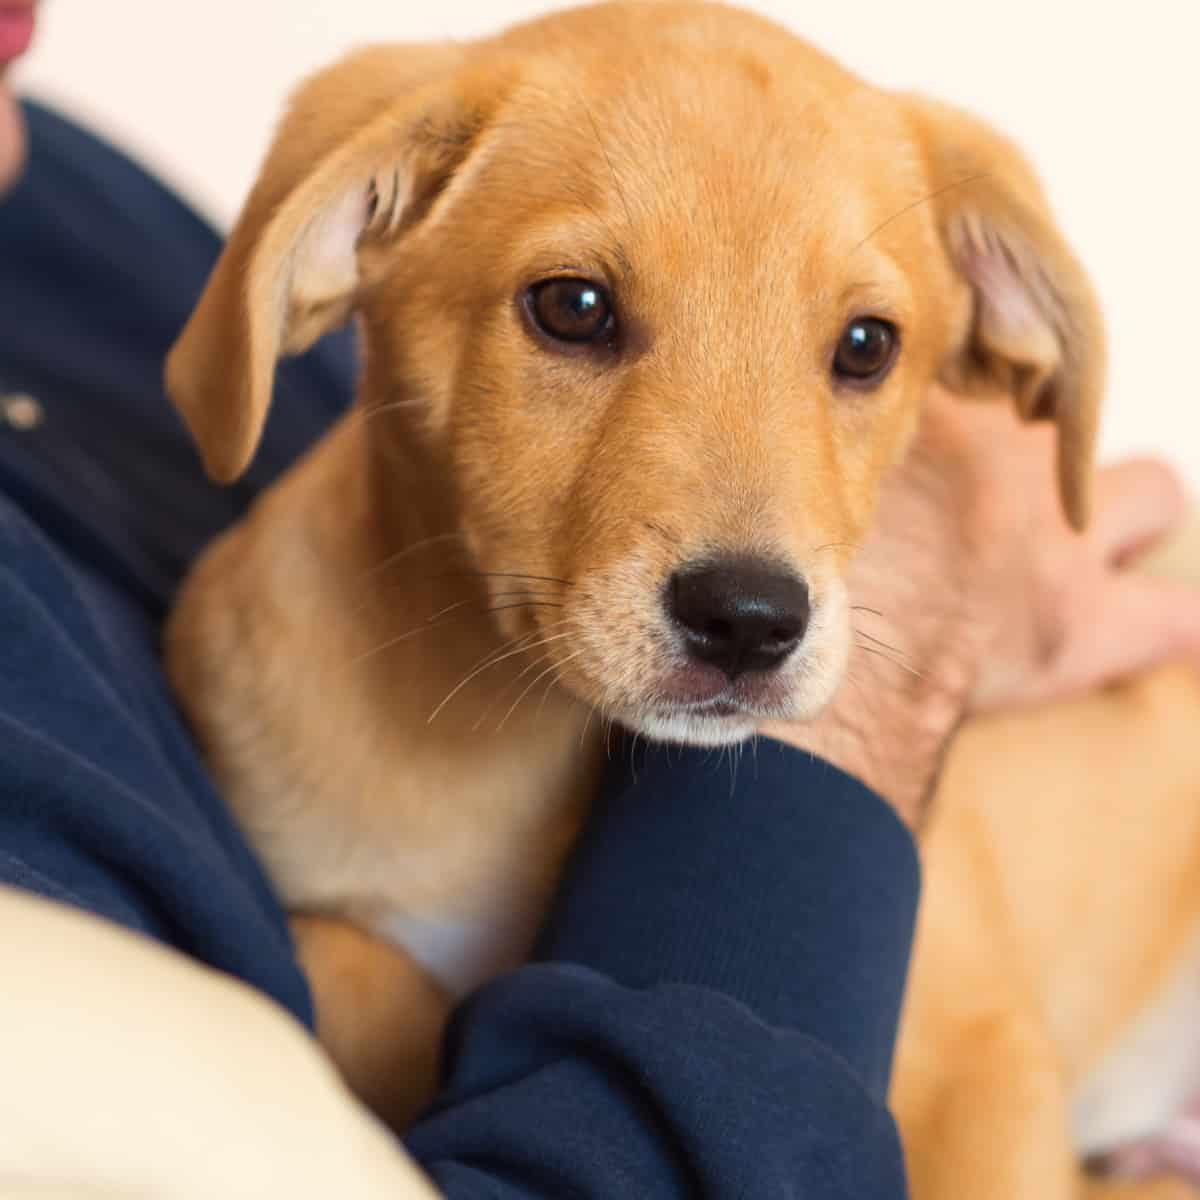 Consider These Things Before Getting a Dog